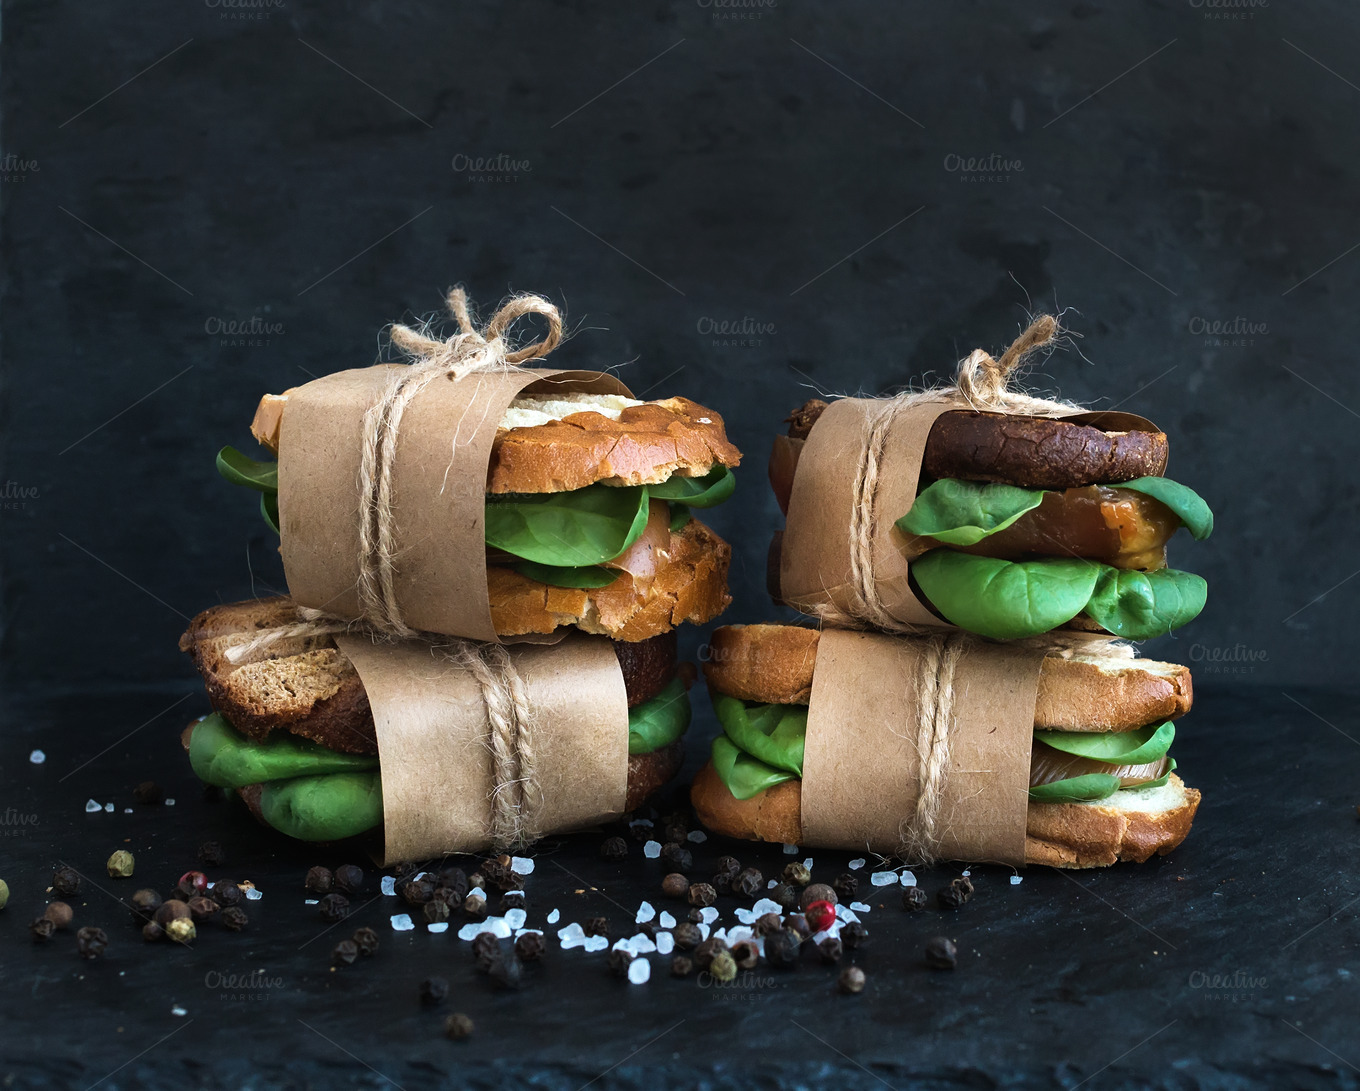 Sandwiches-wrapped-in-craft-paper